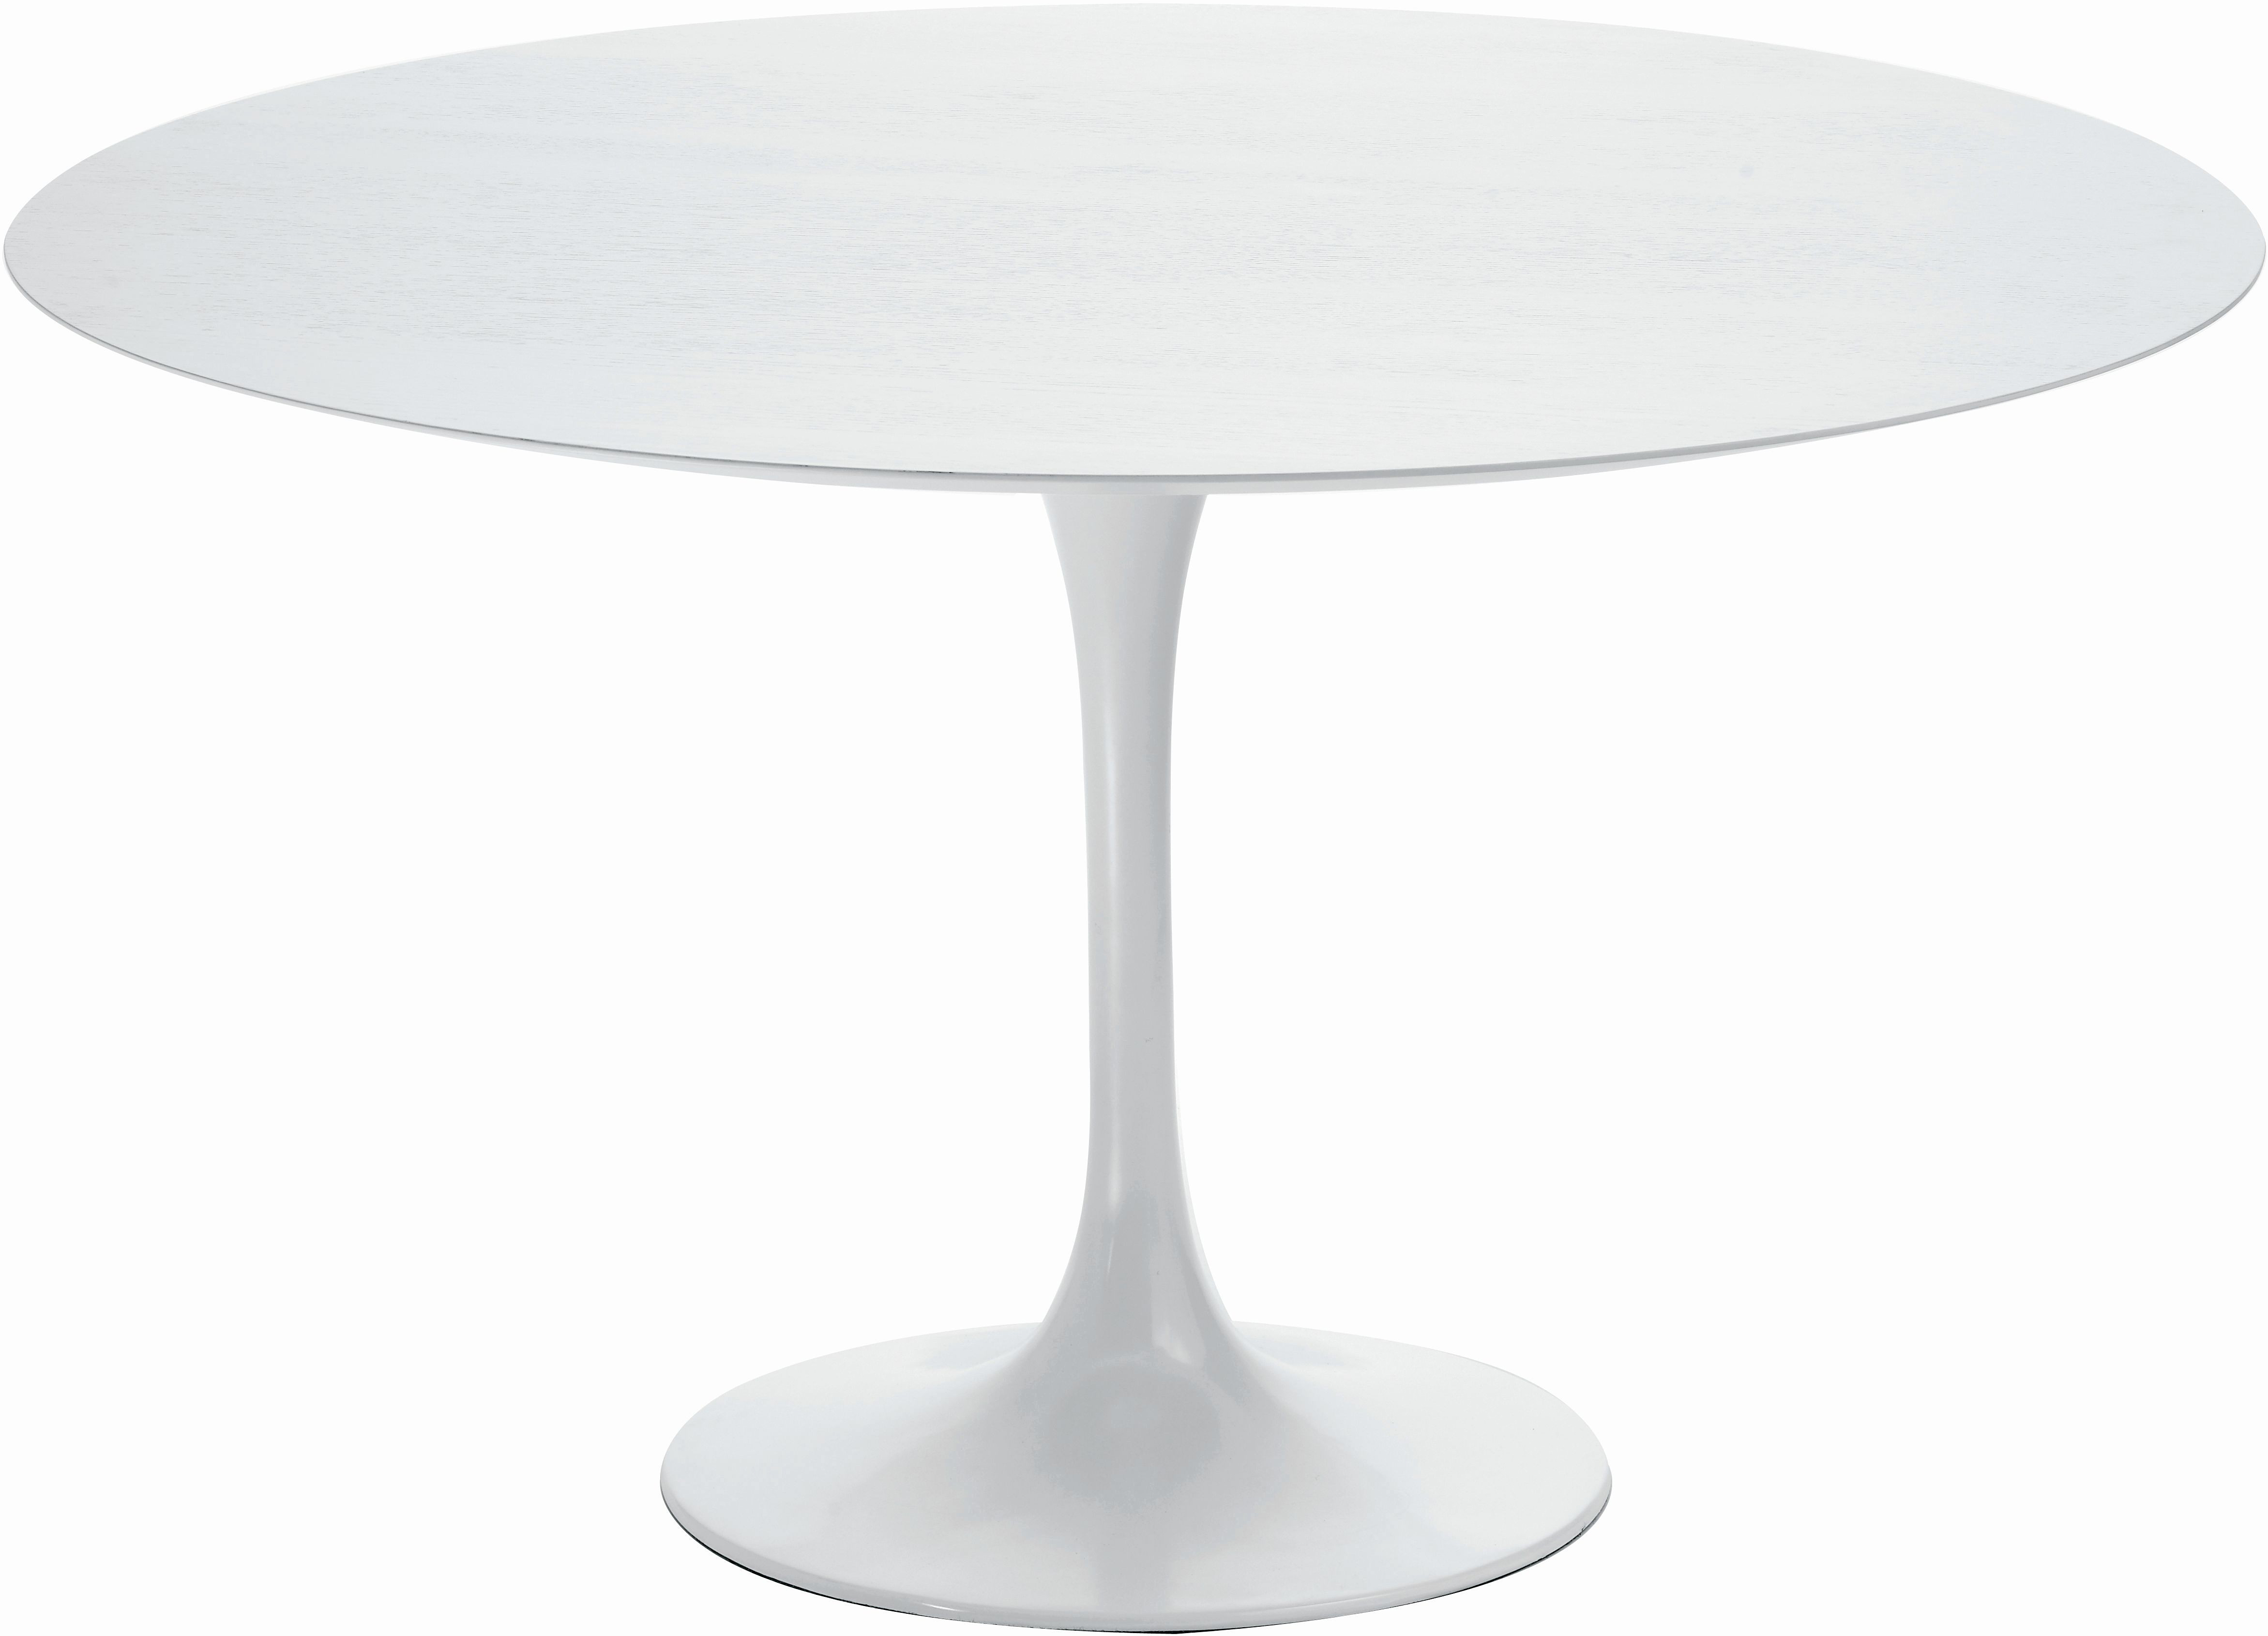 the nuevo cal dining table in white